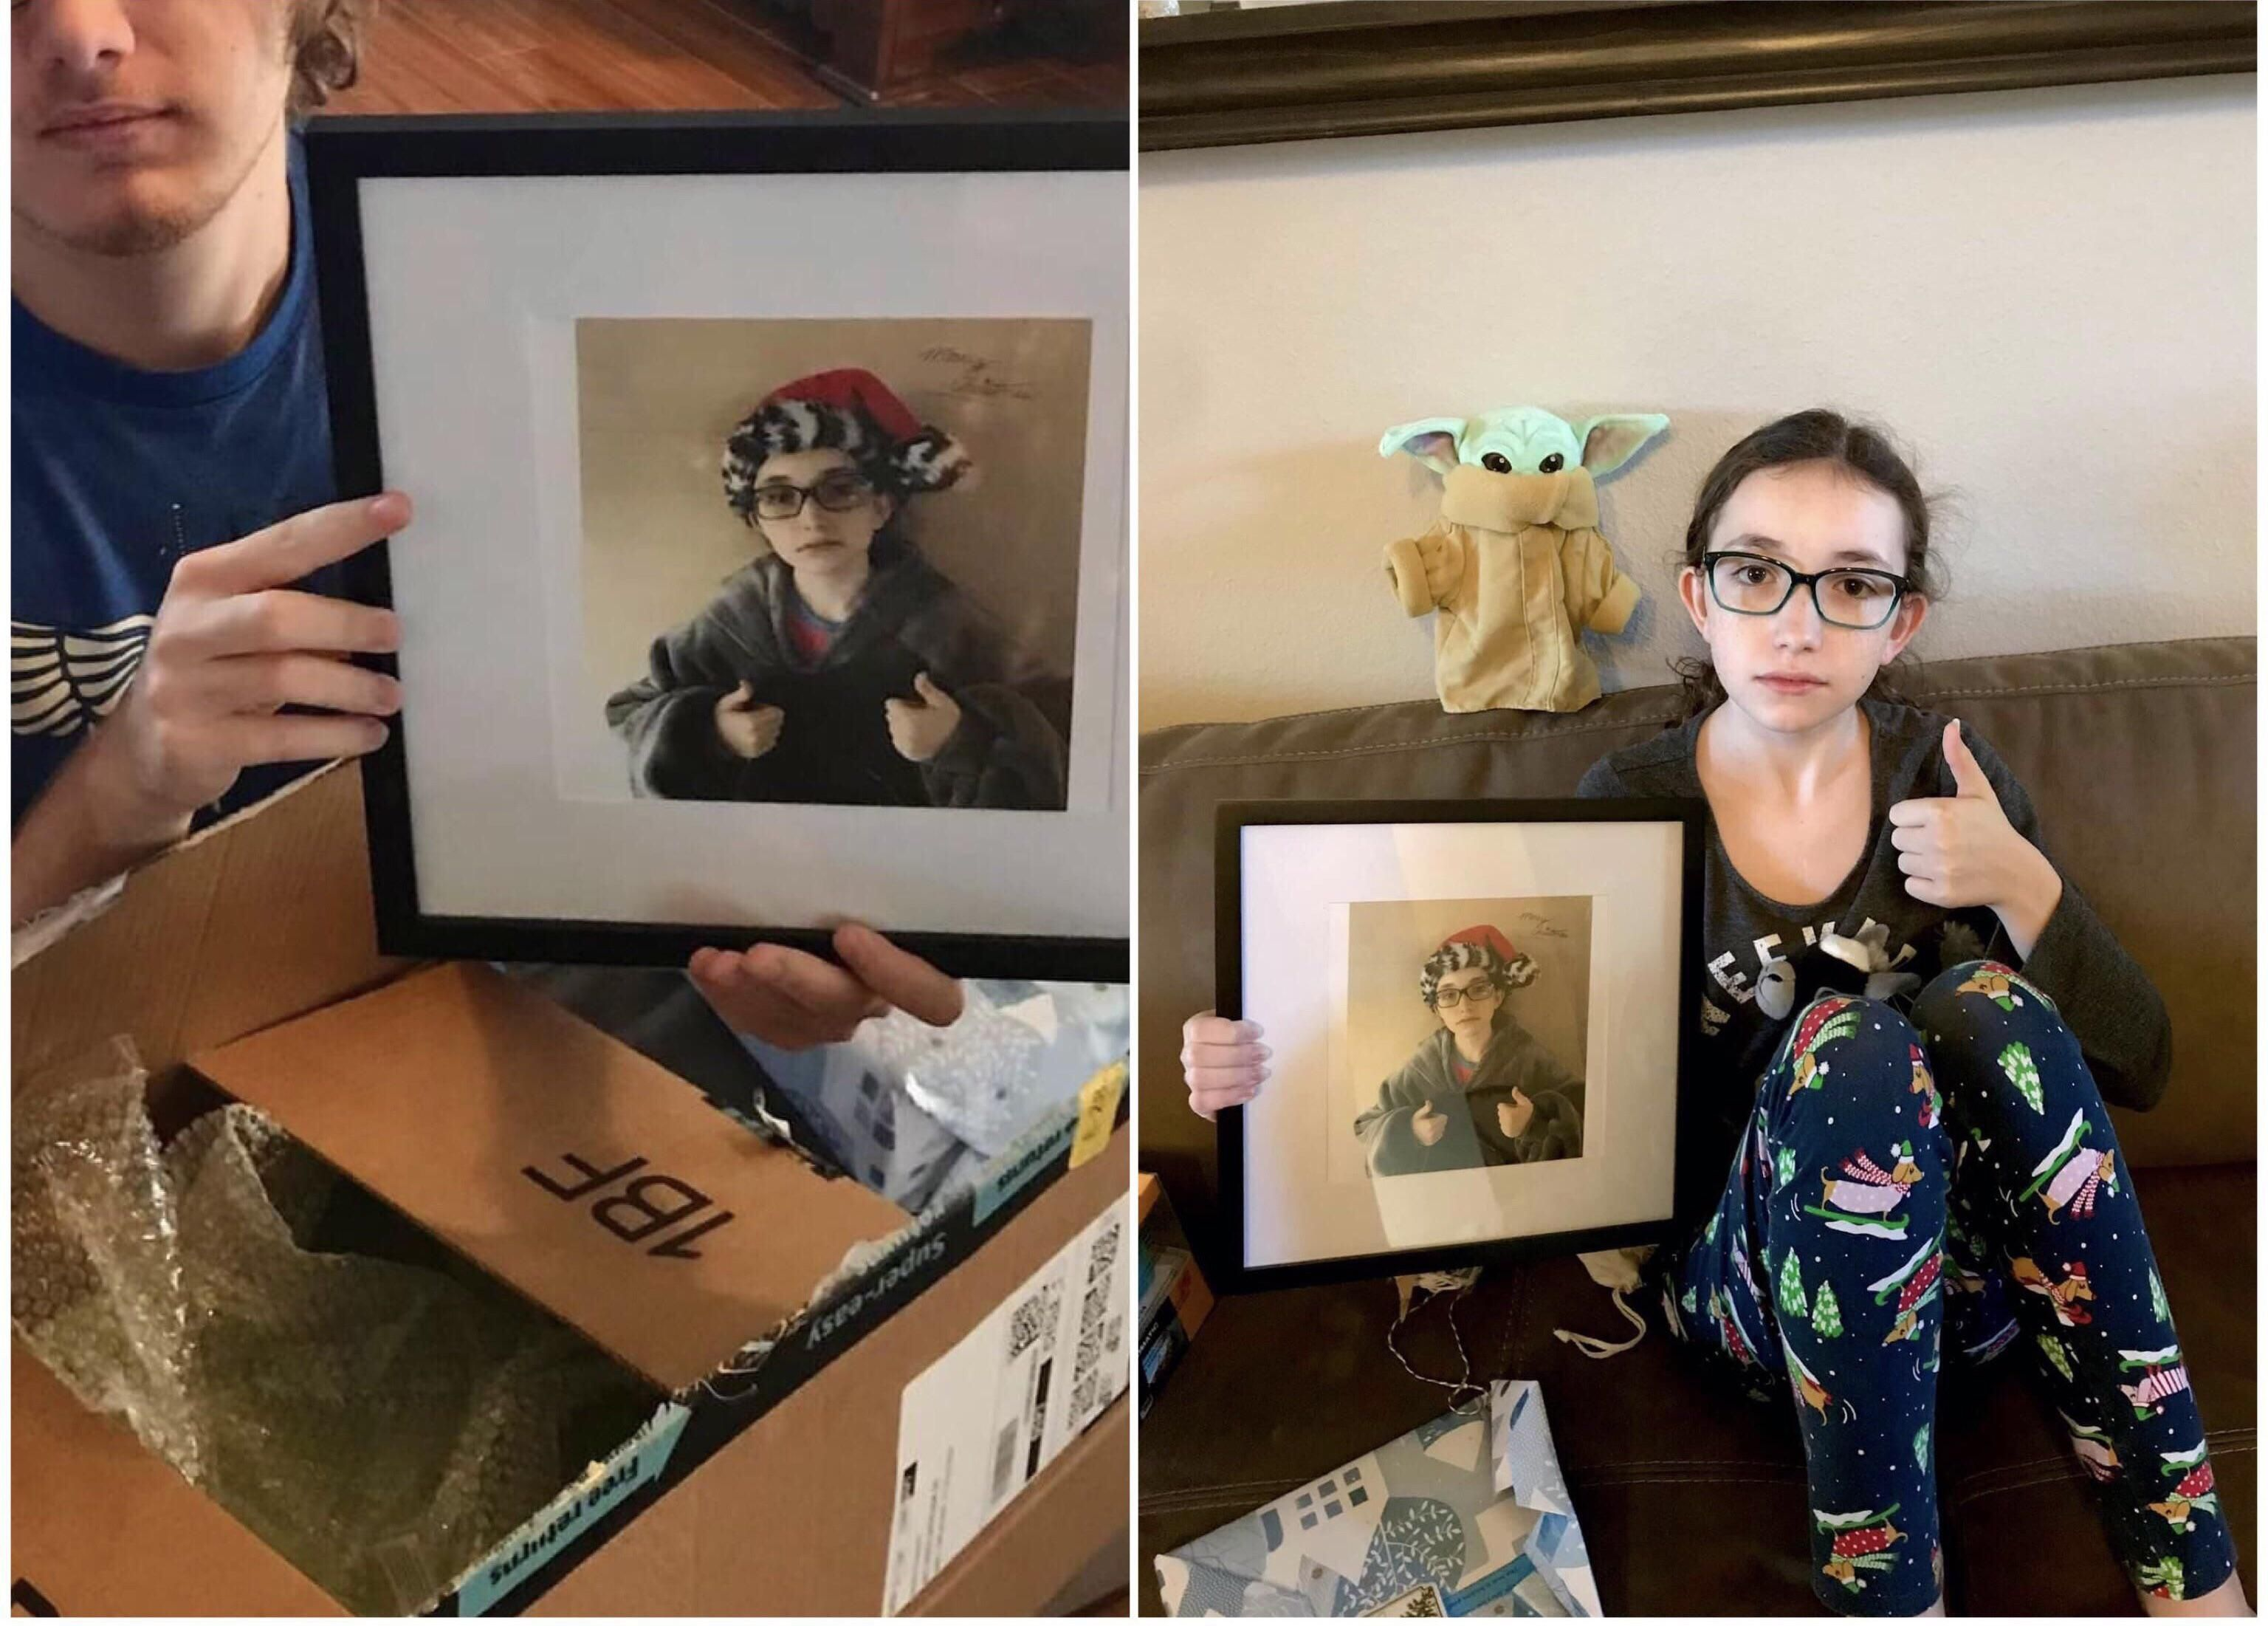 My daughter gave my son a signed picture of herself for Christmas.